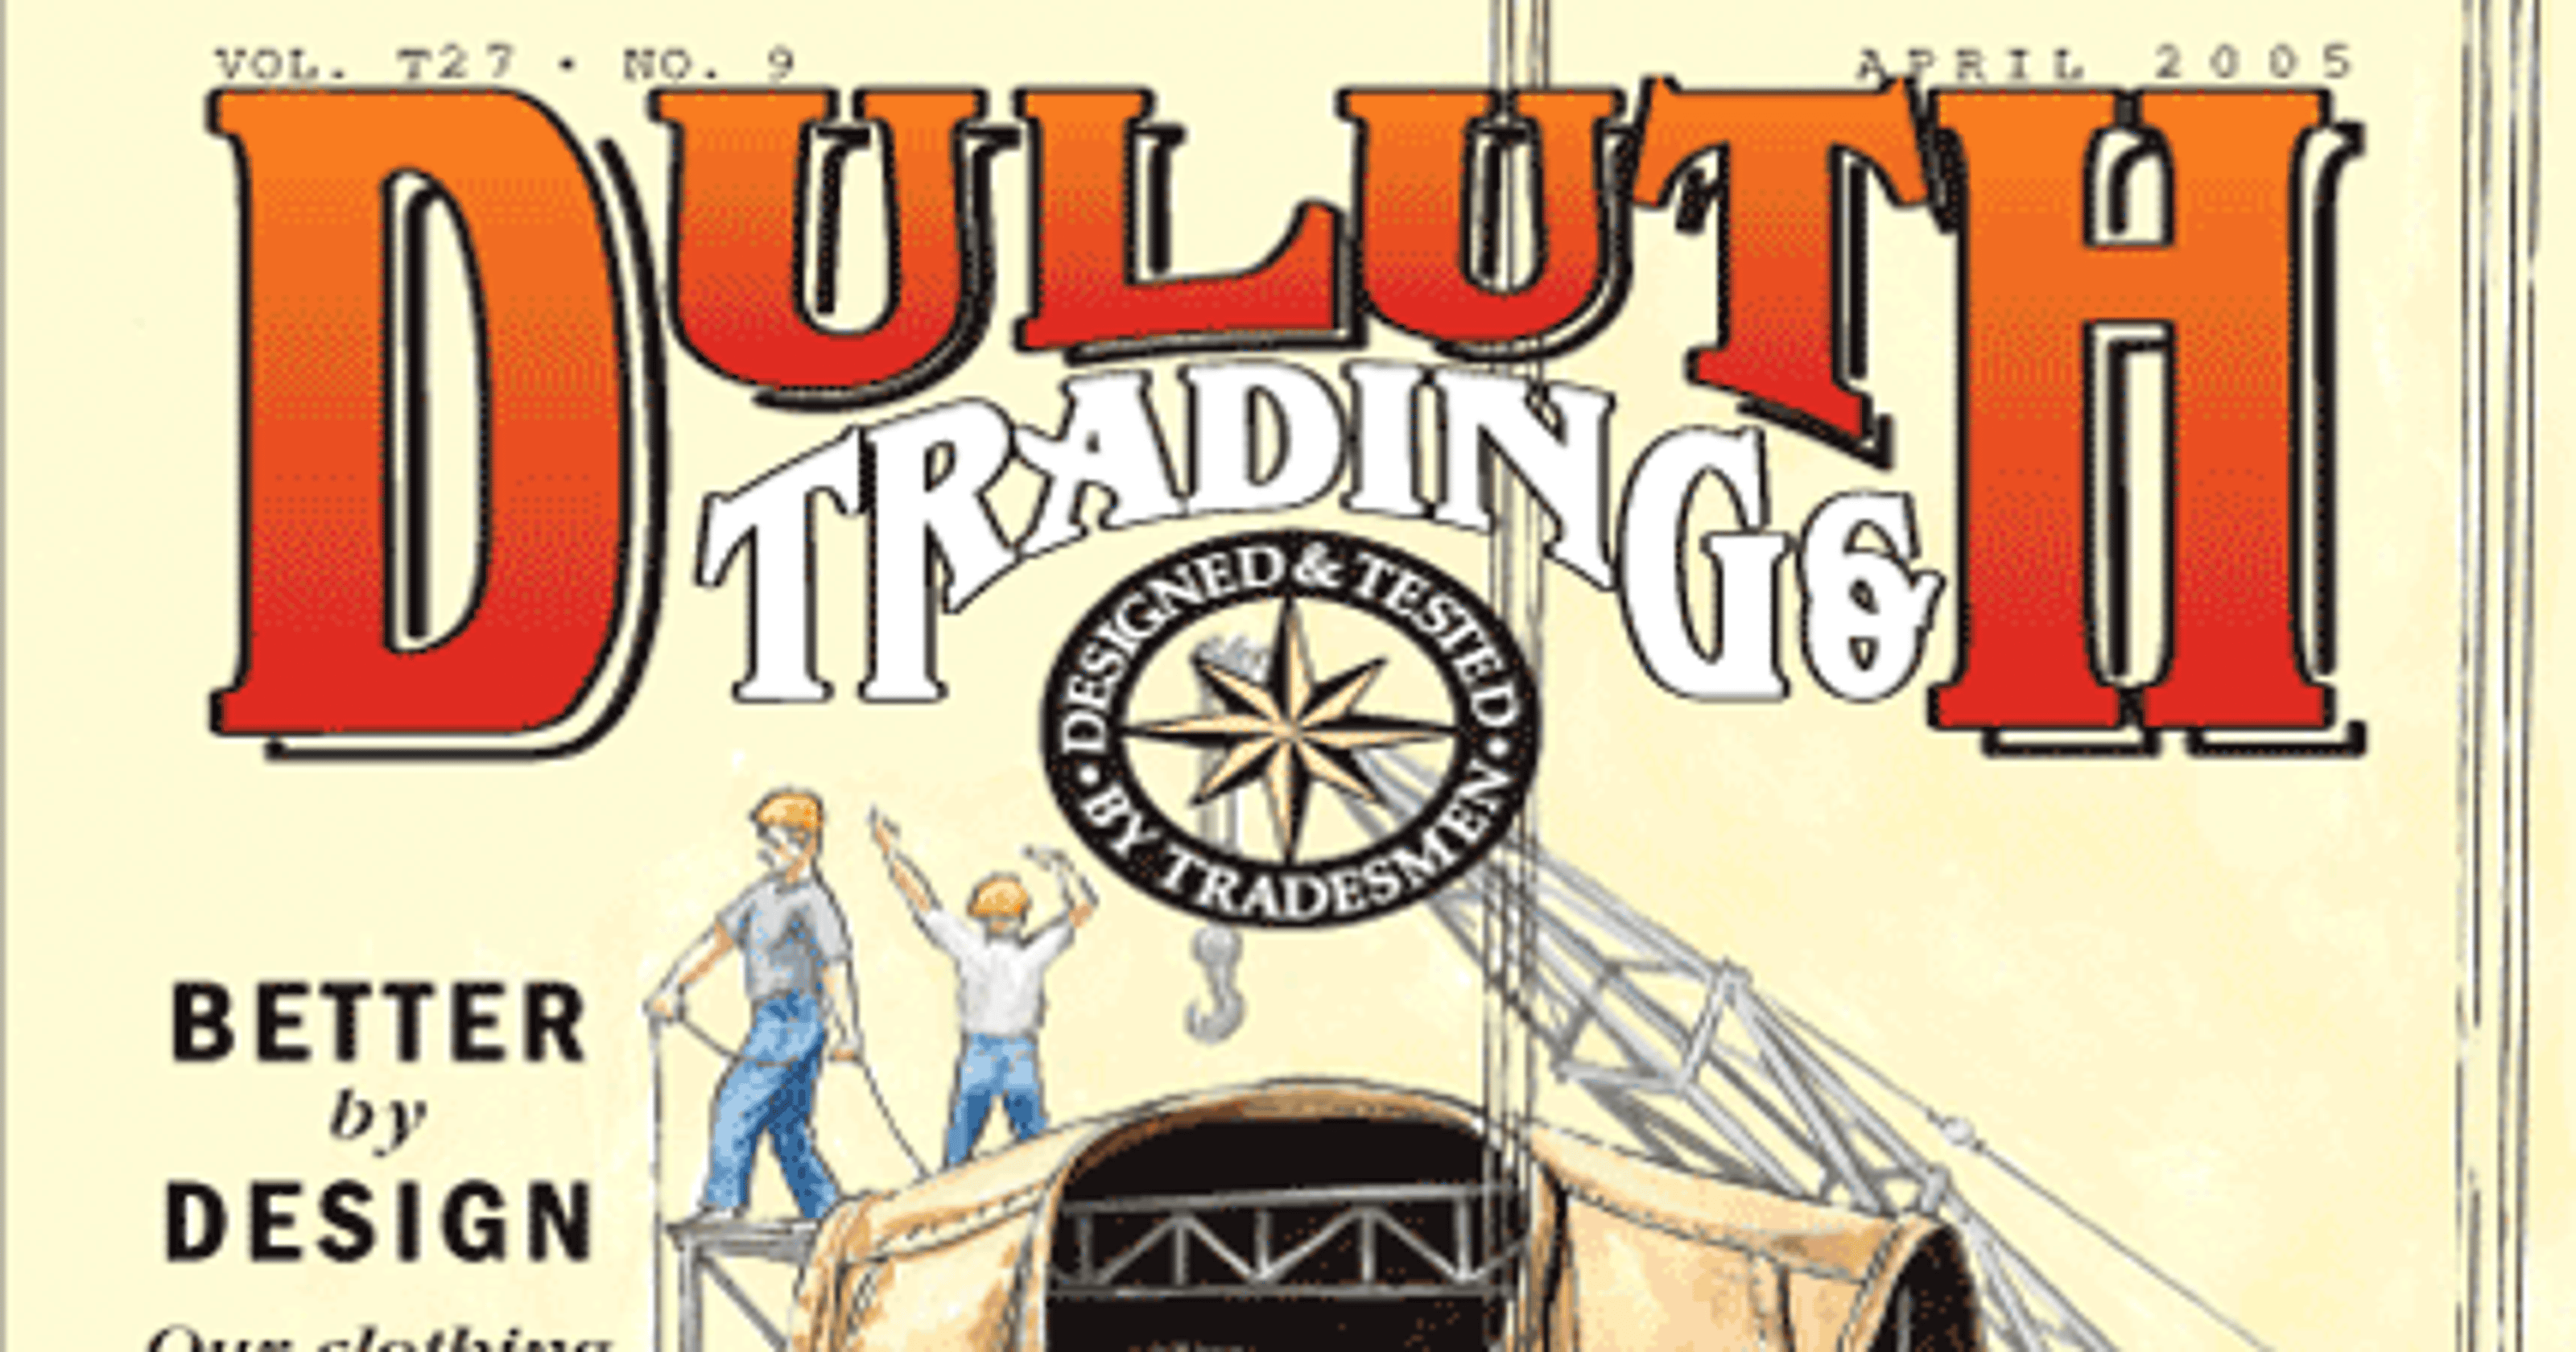 Welcome To Raj Trading Co: Noblesville To Welcome Duluth Trading Co